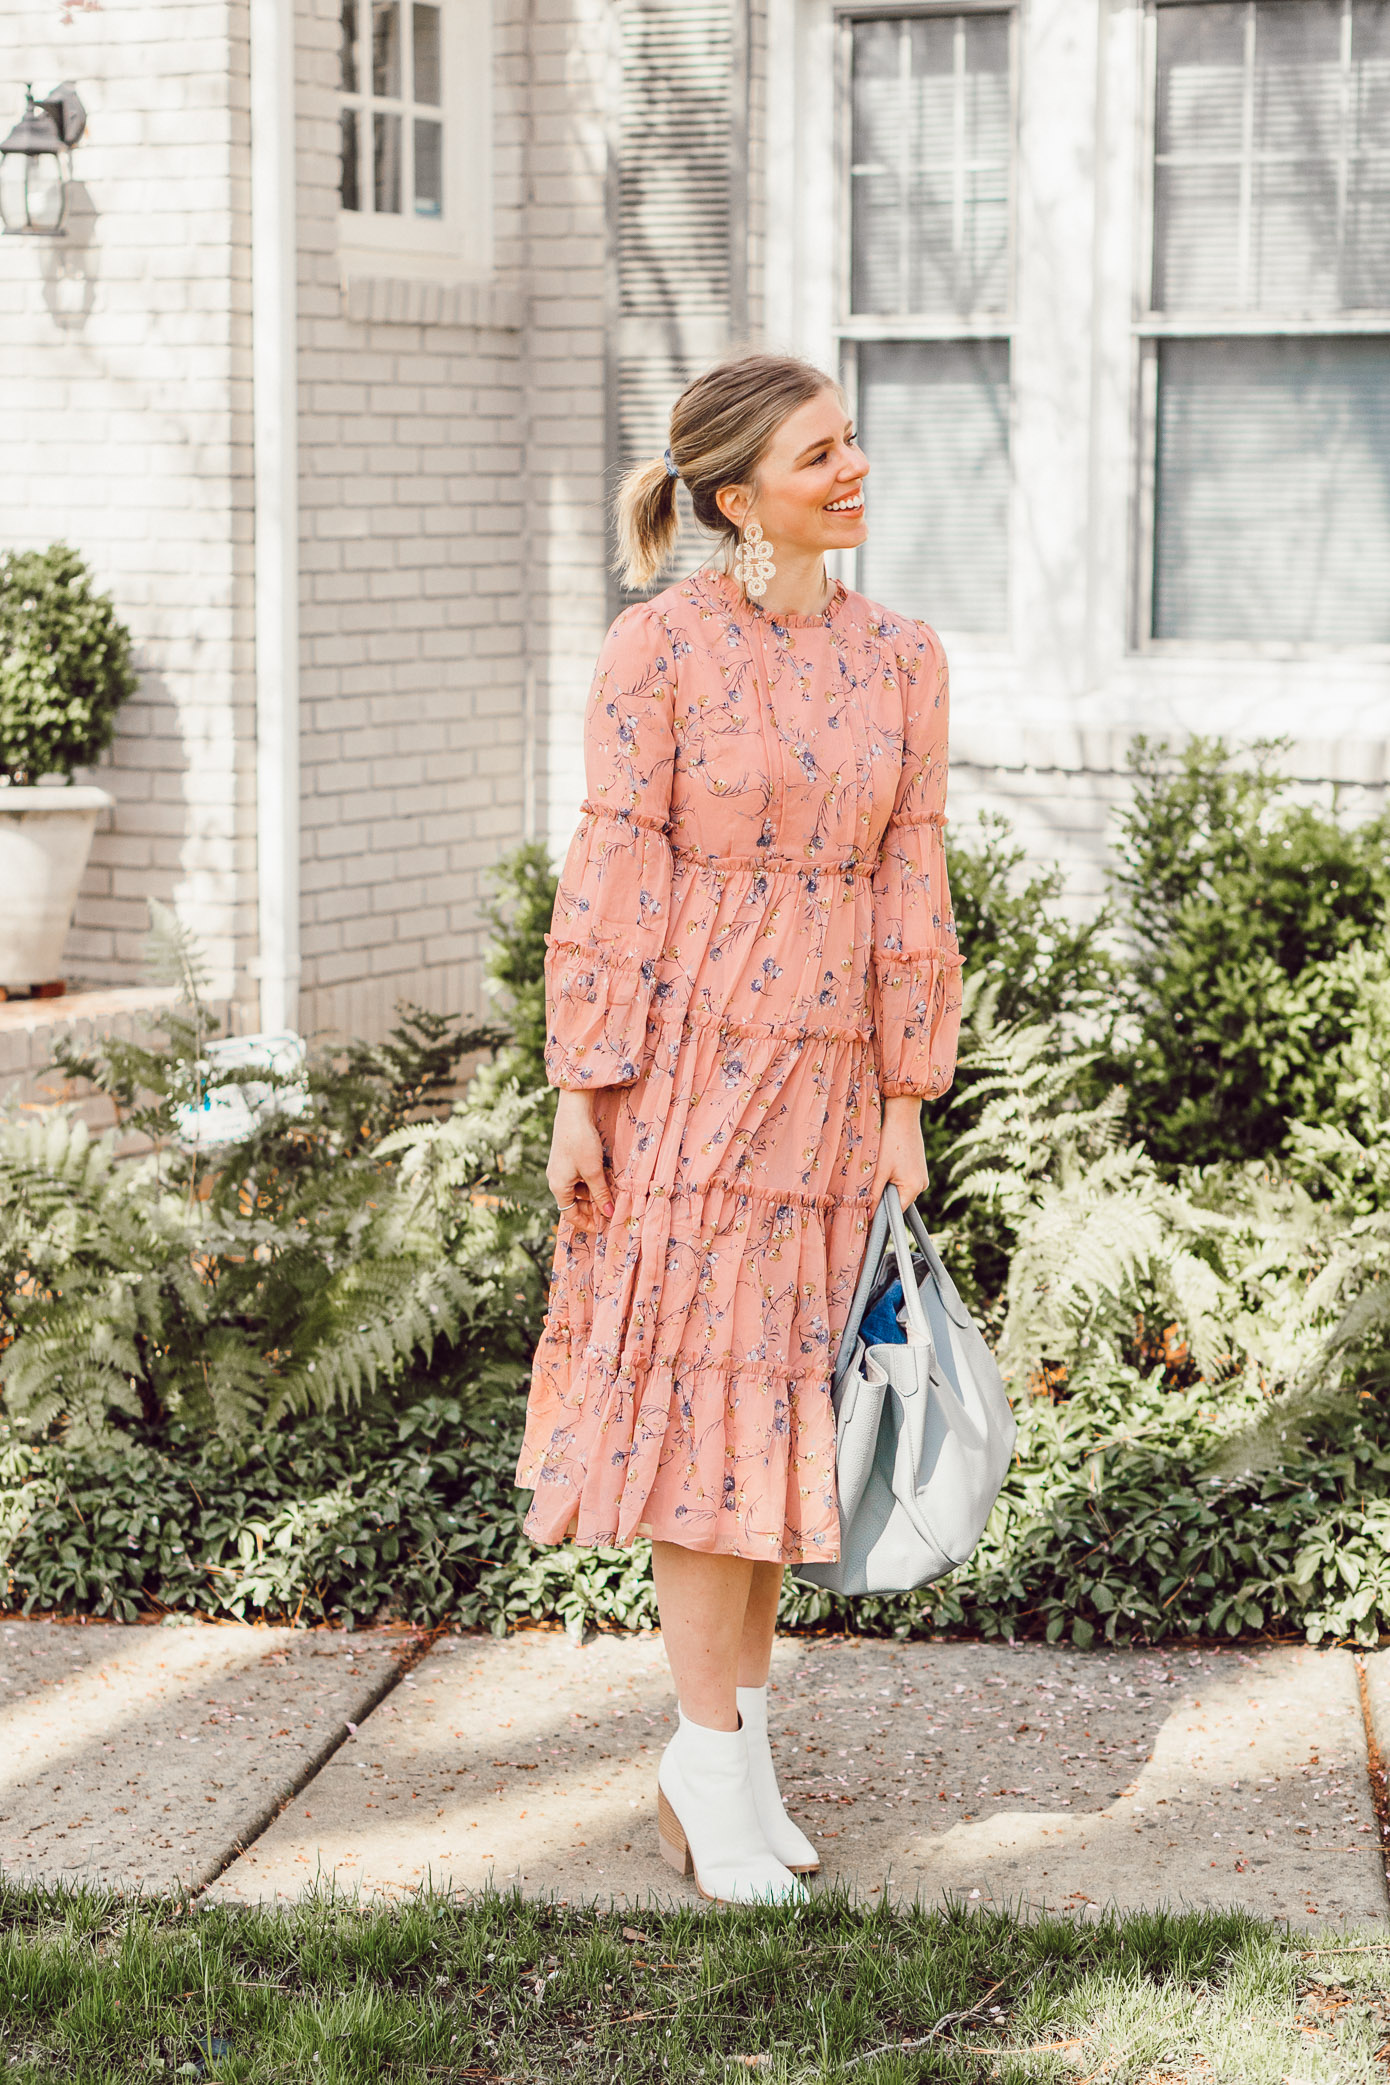 Laura Leigh Elliott shares an elevated Spring dress with sweet floral print for spring | Louella Reese